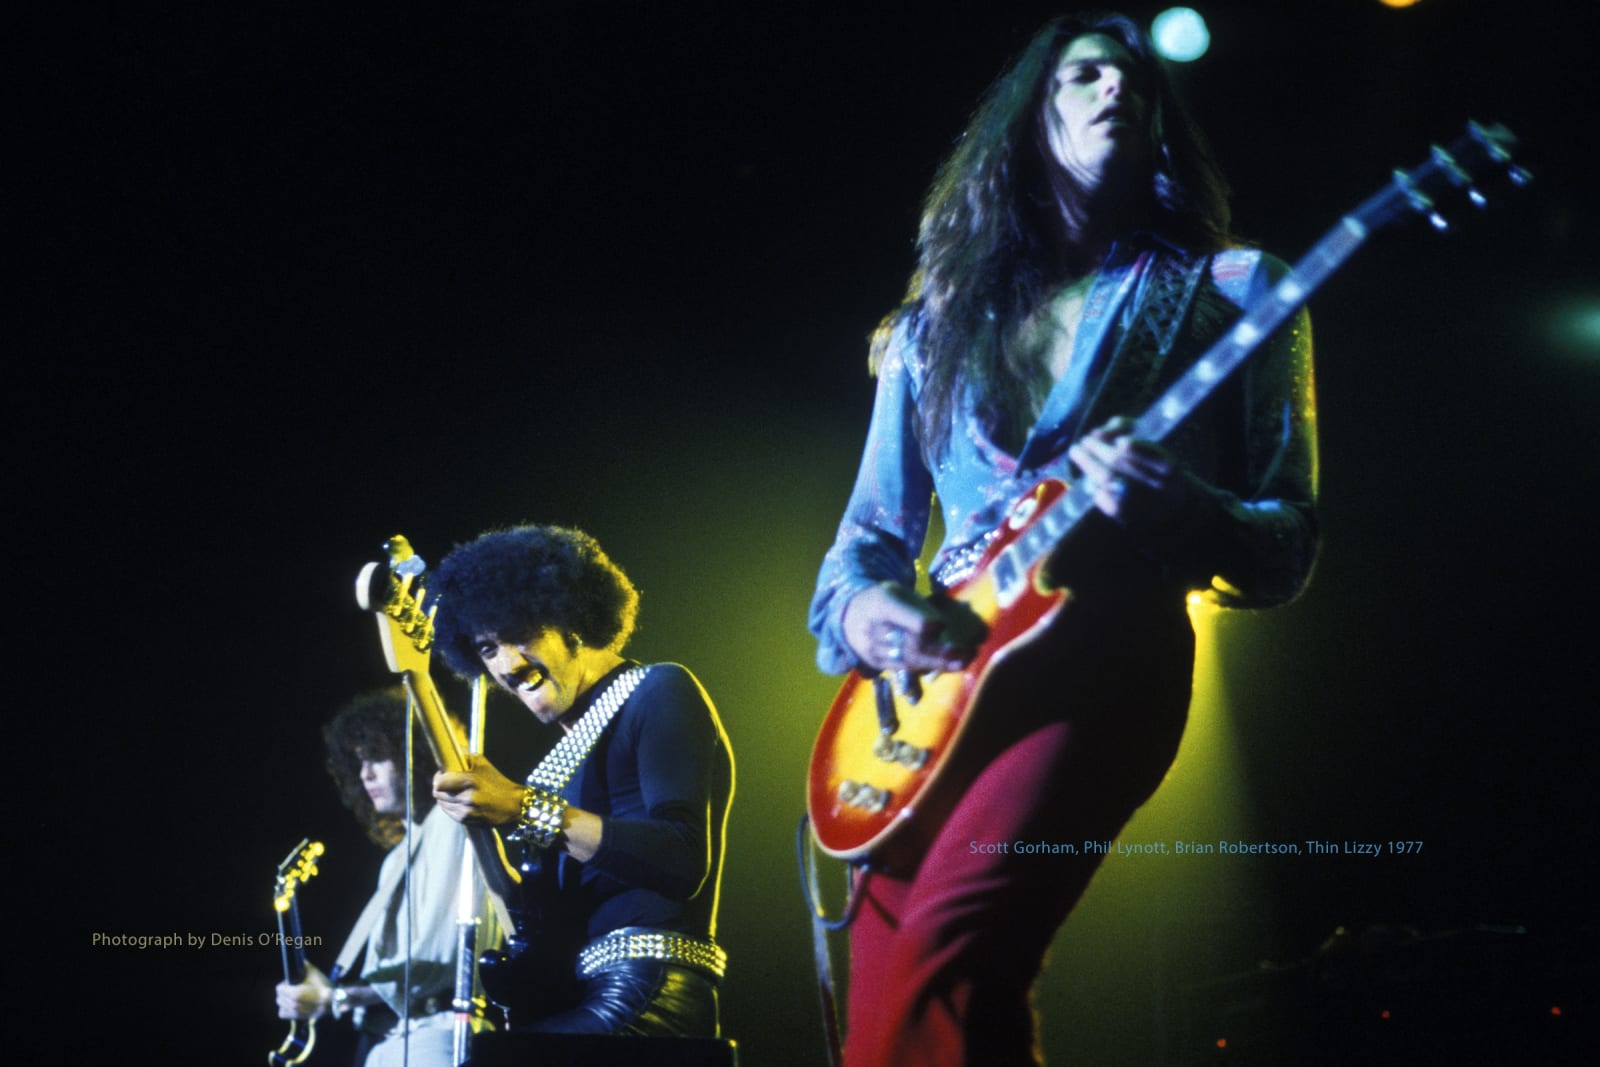 THIN LIZZY, Thin Lizzy Live, 1977